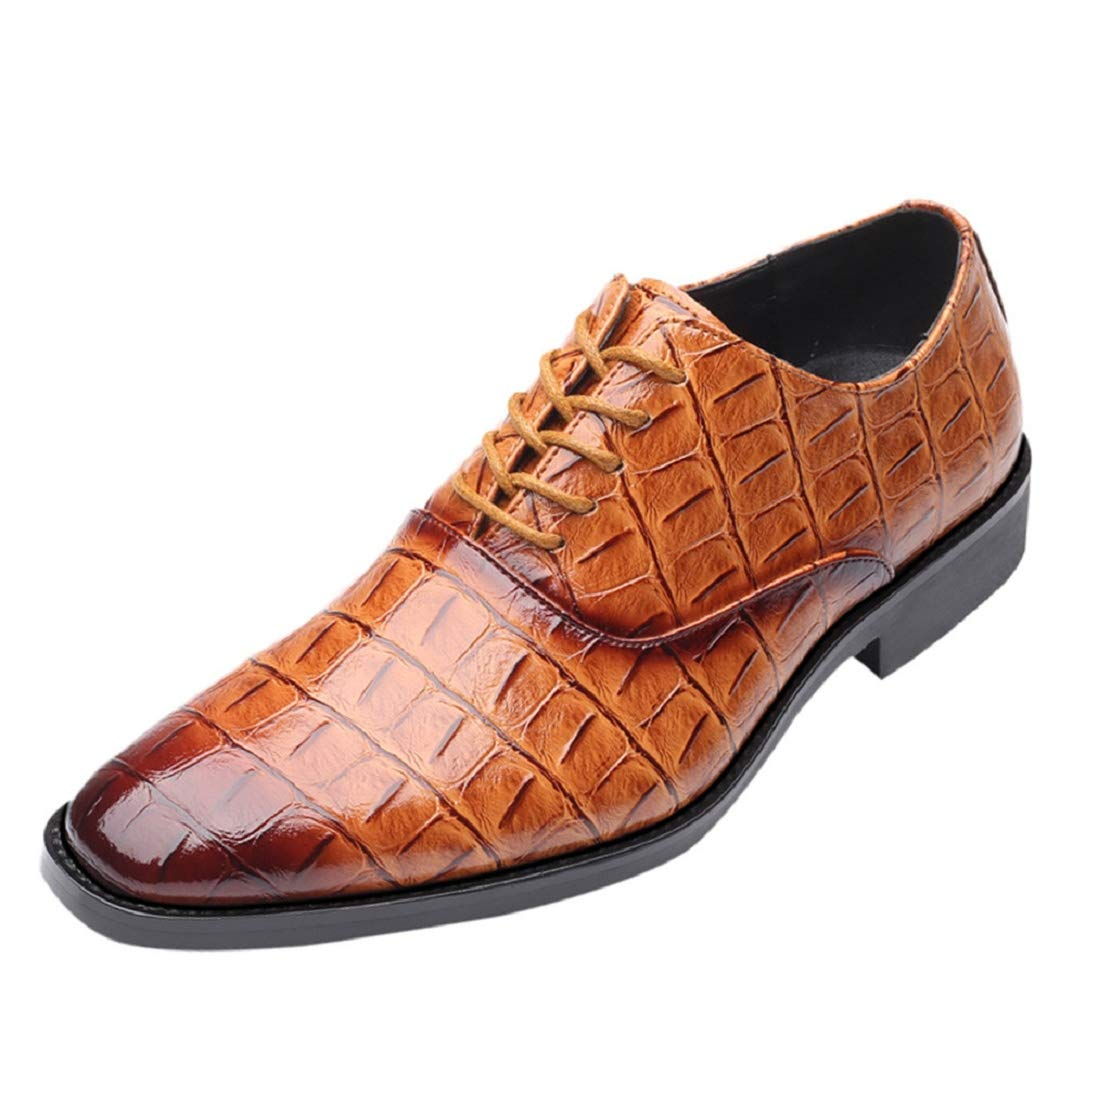 Men's Crocodile Print Loafers Lace up Wingtip Dress Shoes Casual Oxford Shoes Wedding Business Formal Shoes by Lowprofile Yellow